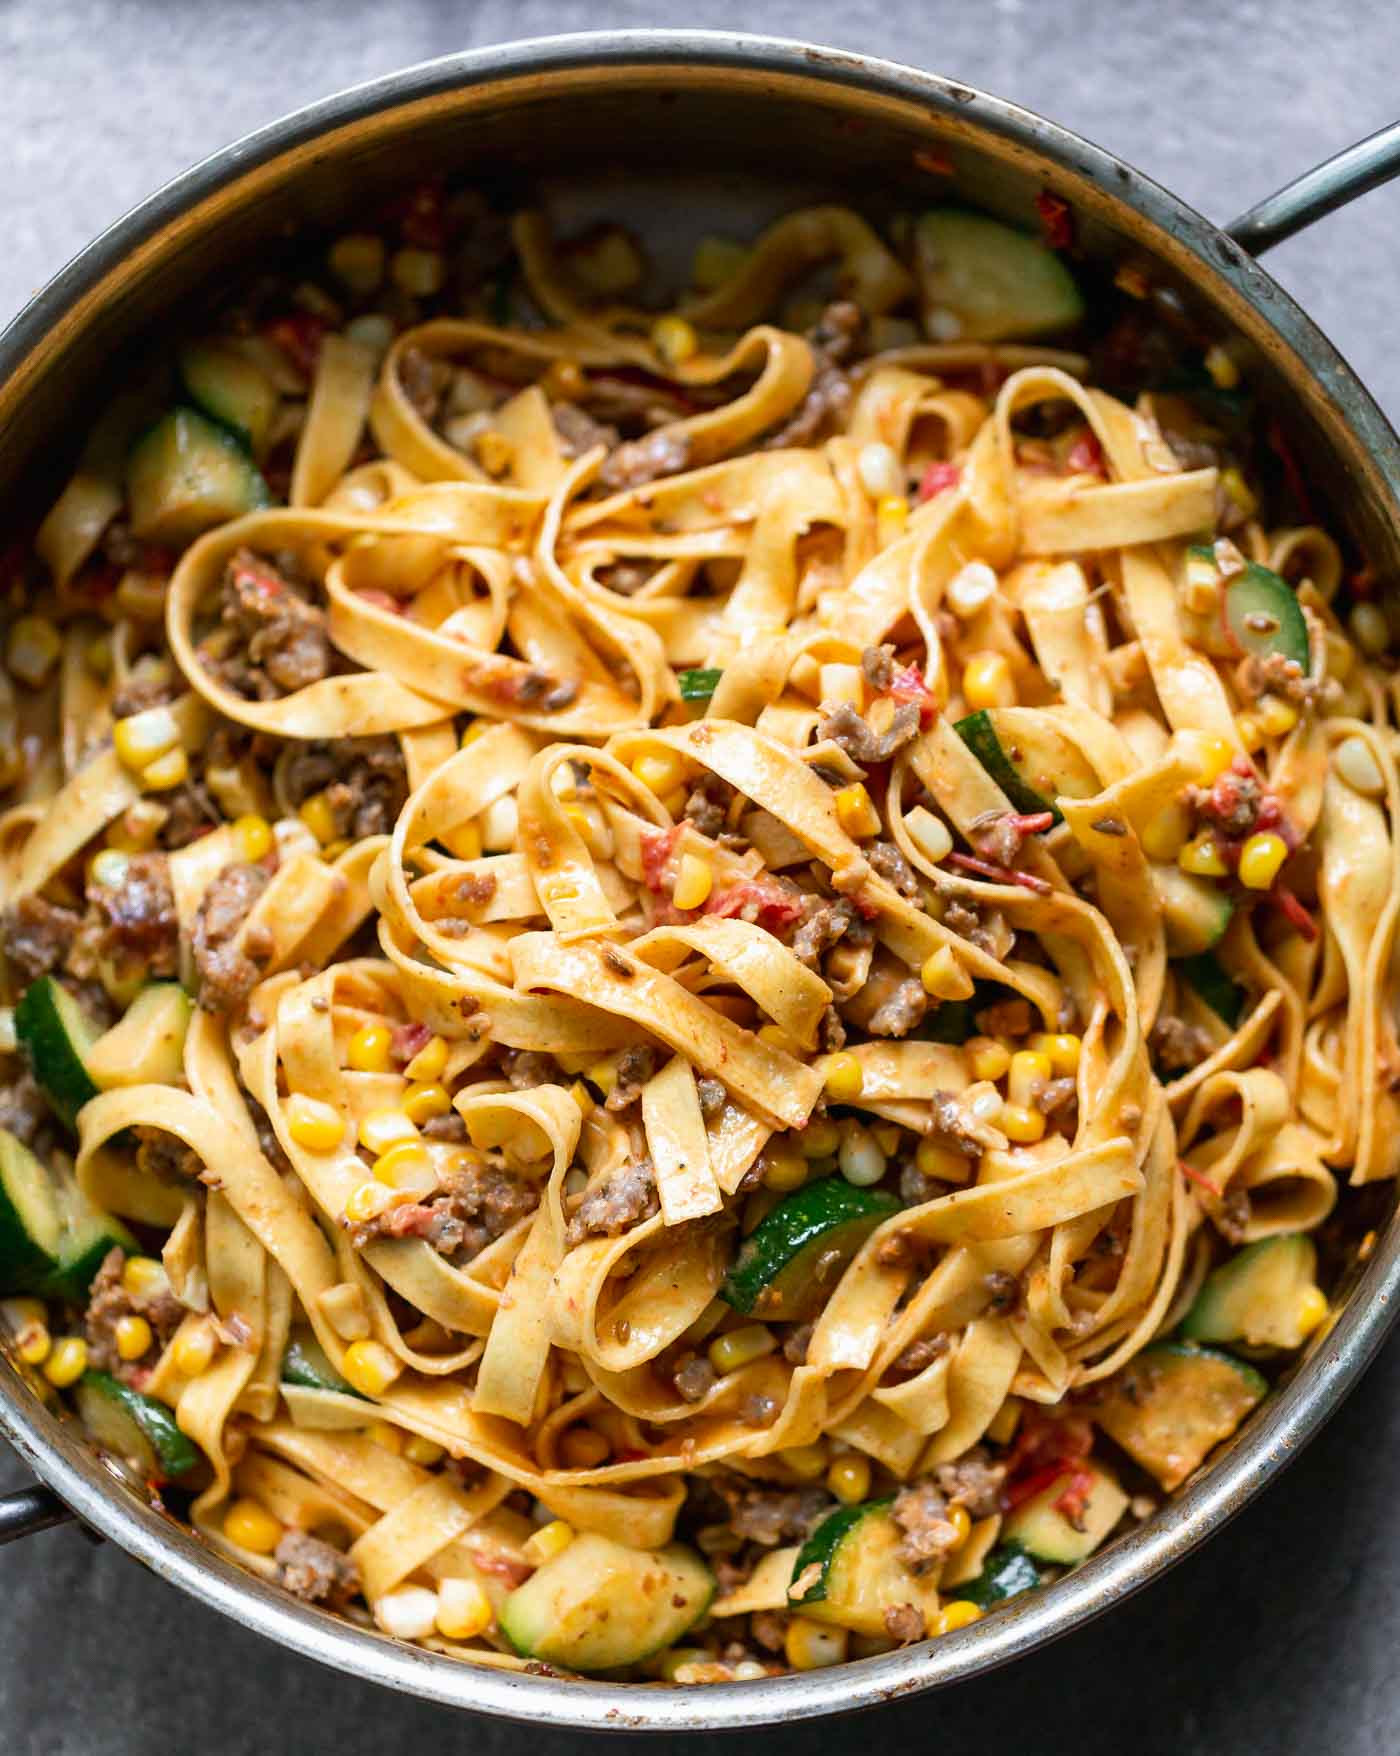 Summer Pasta Sauces  Summer Pasta with Brown Butter Tomato Sauce Cooking for